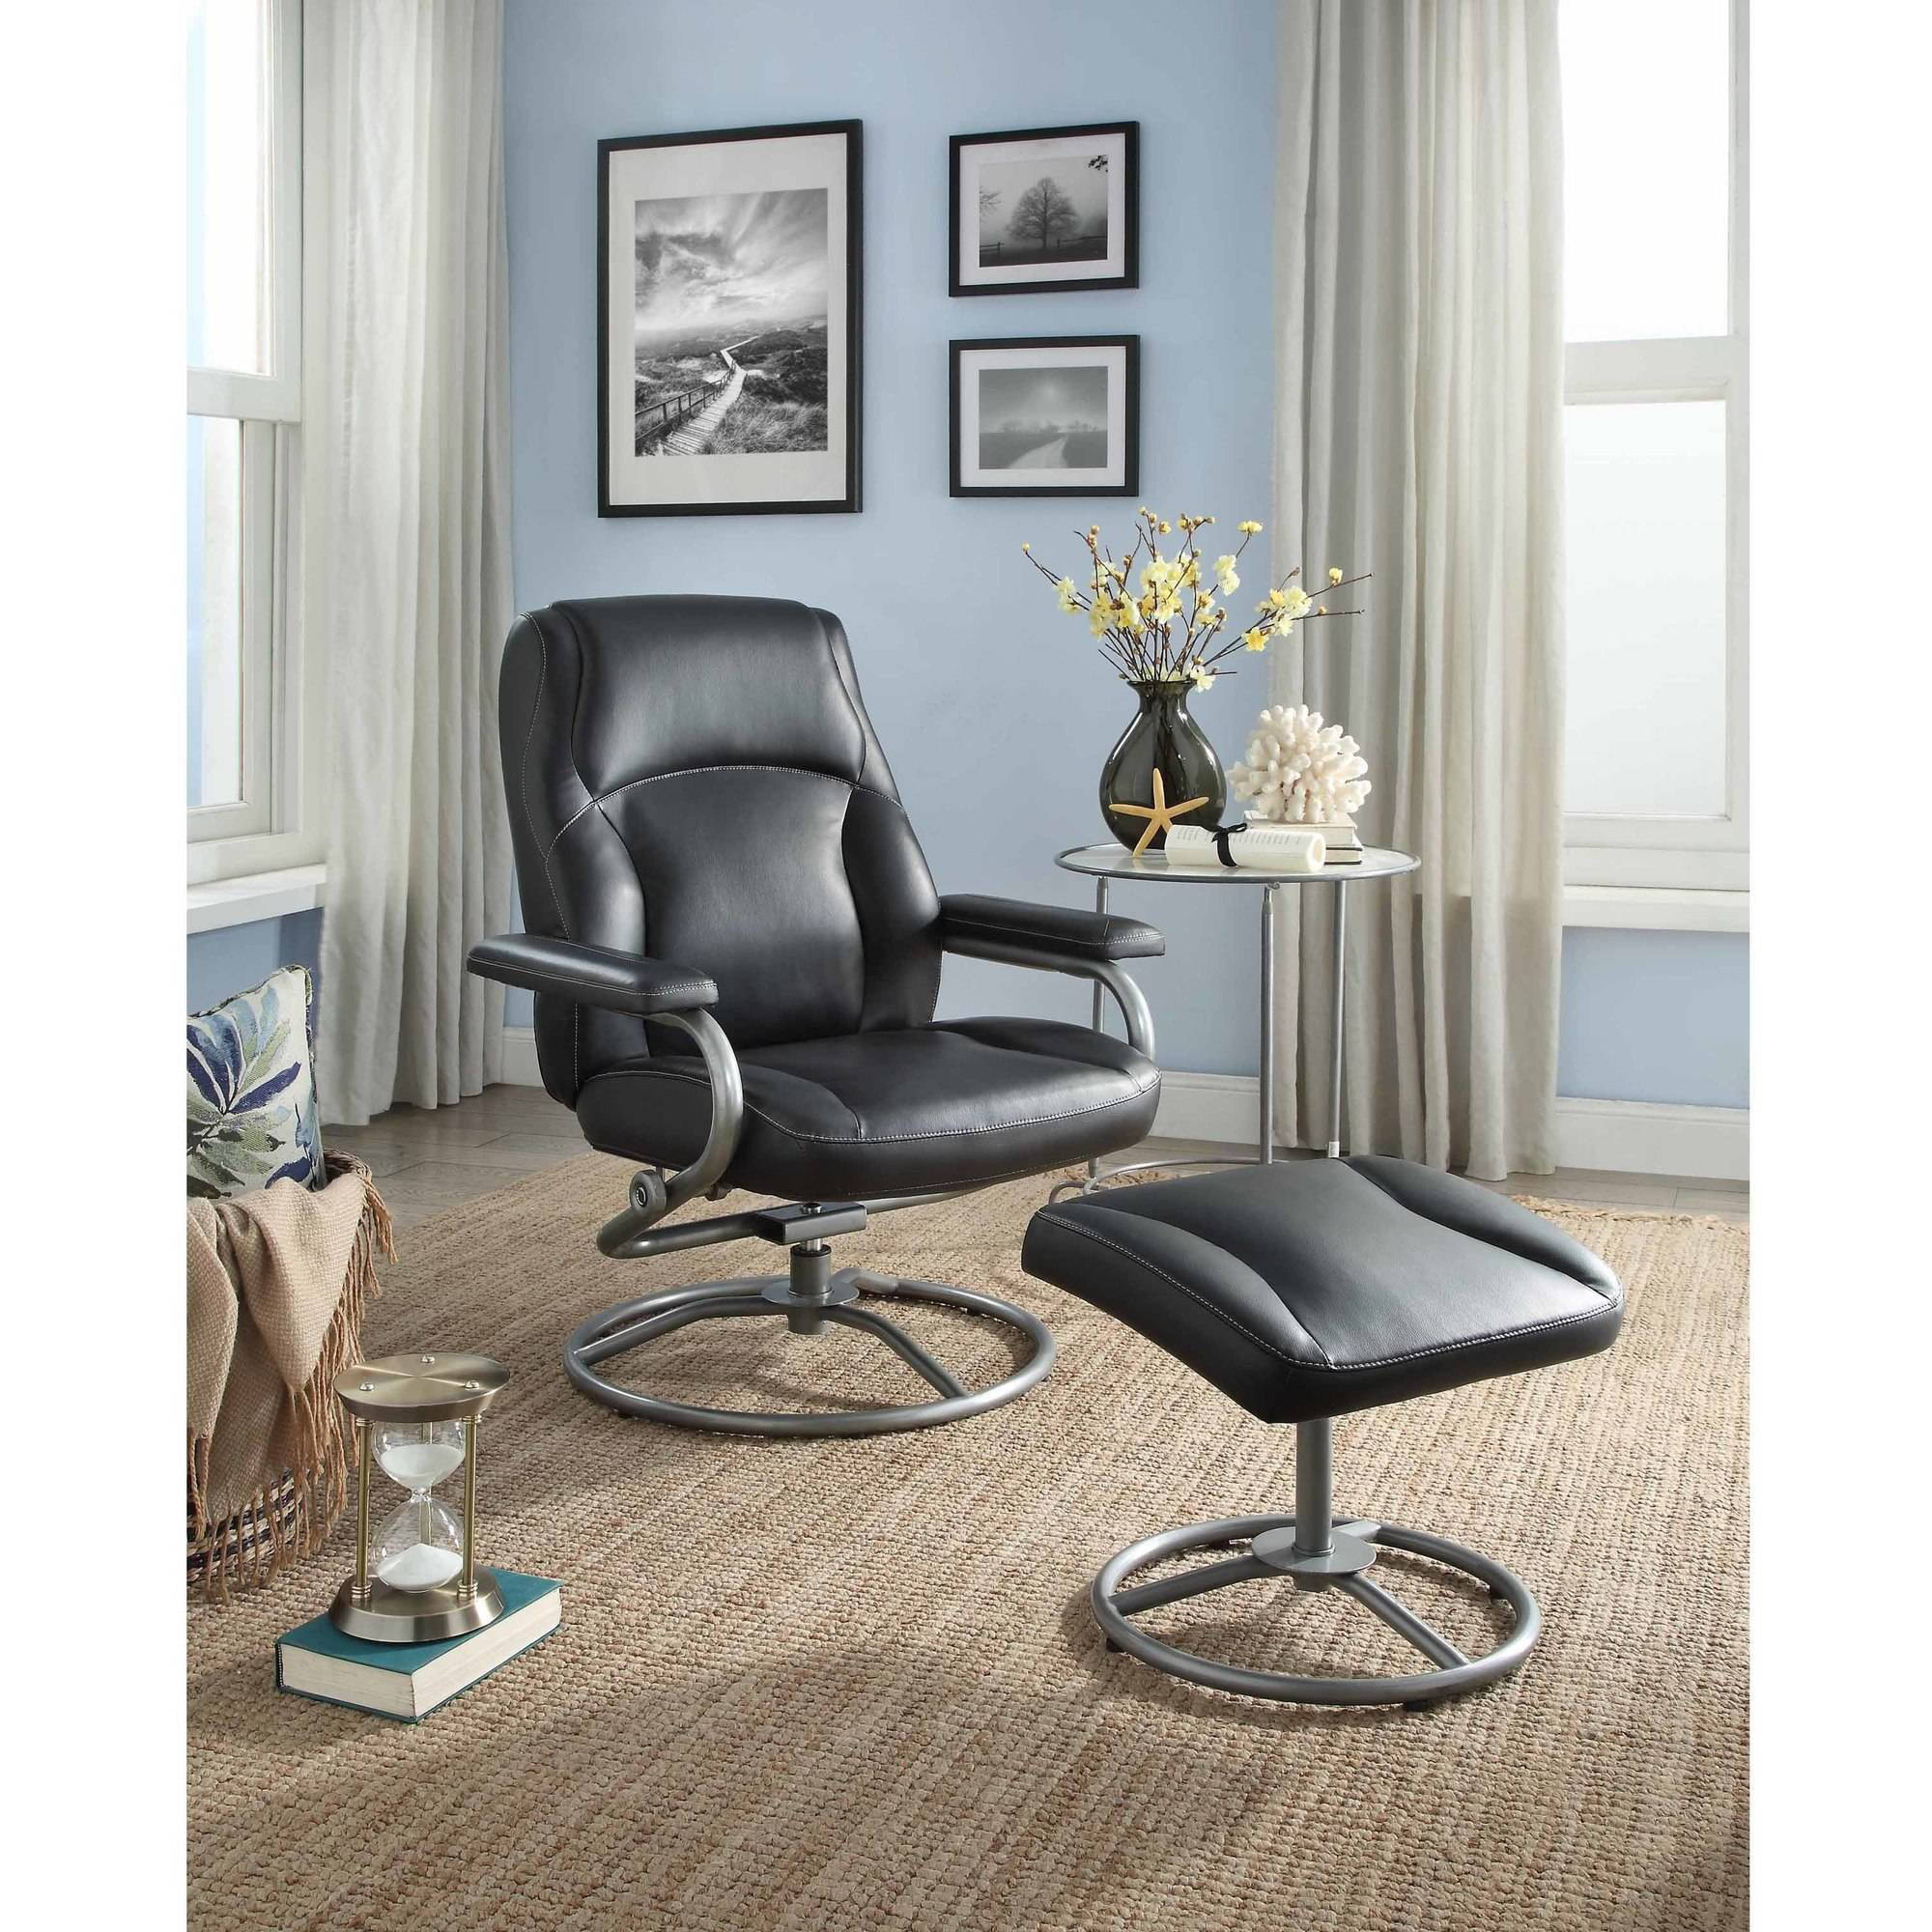 reclining chair with ottoman leather bar table chairs set mainstays plush pillowed recliner swivel and multiple available colors walmart com